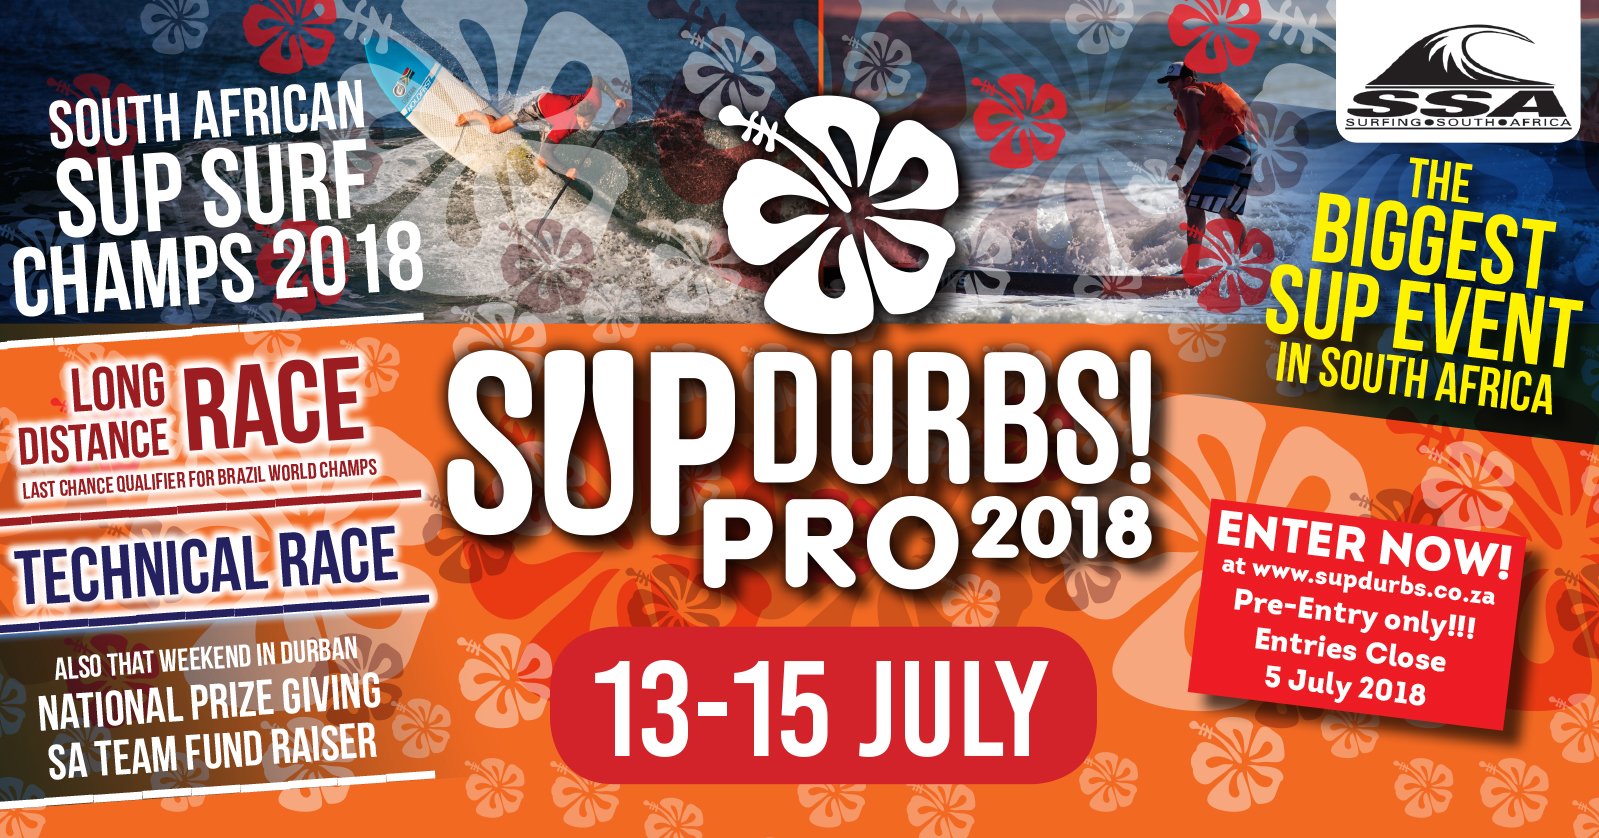 Enter the 2018 SUP Durbs Pro Now